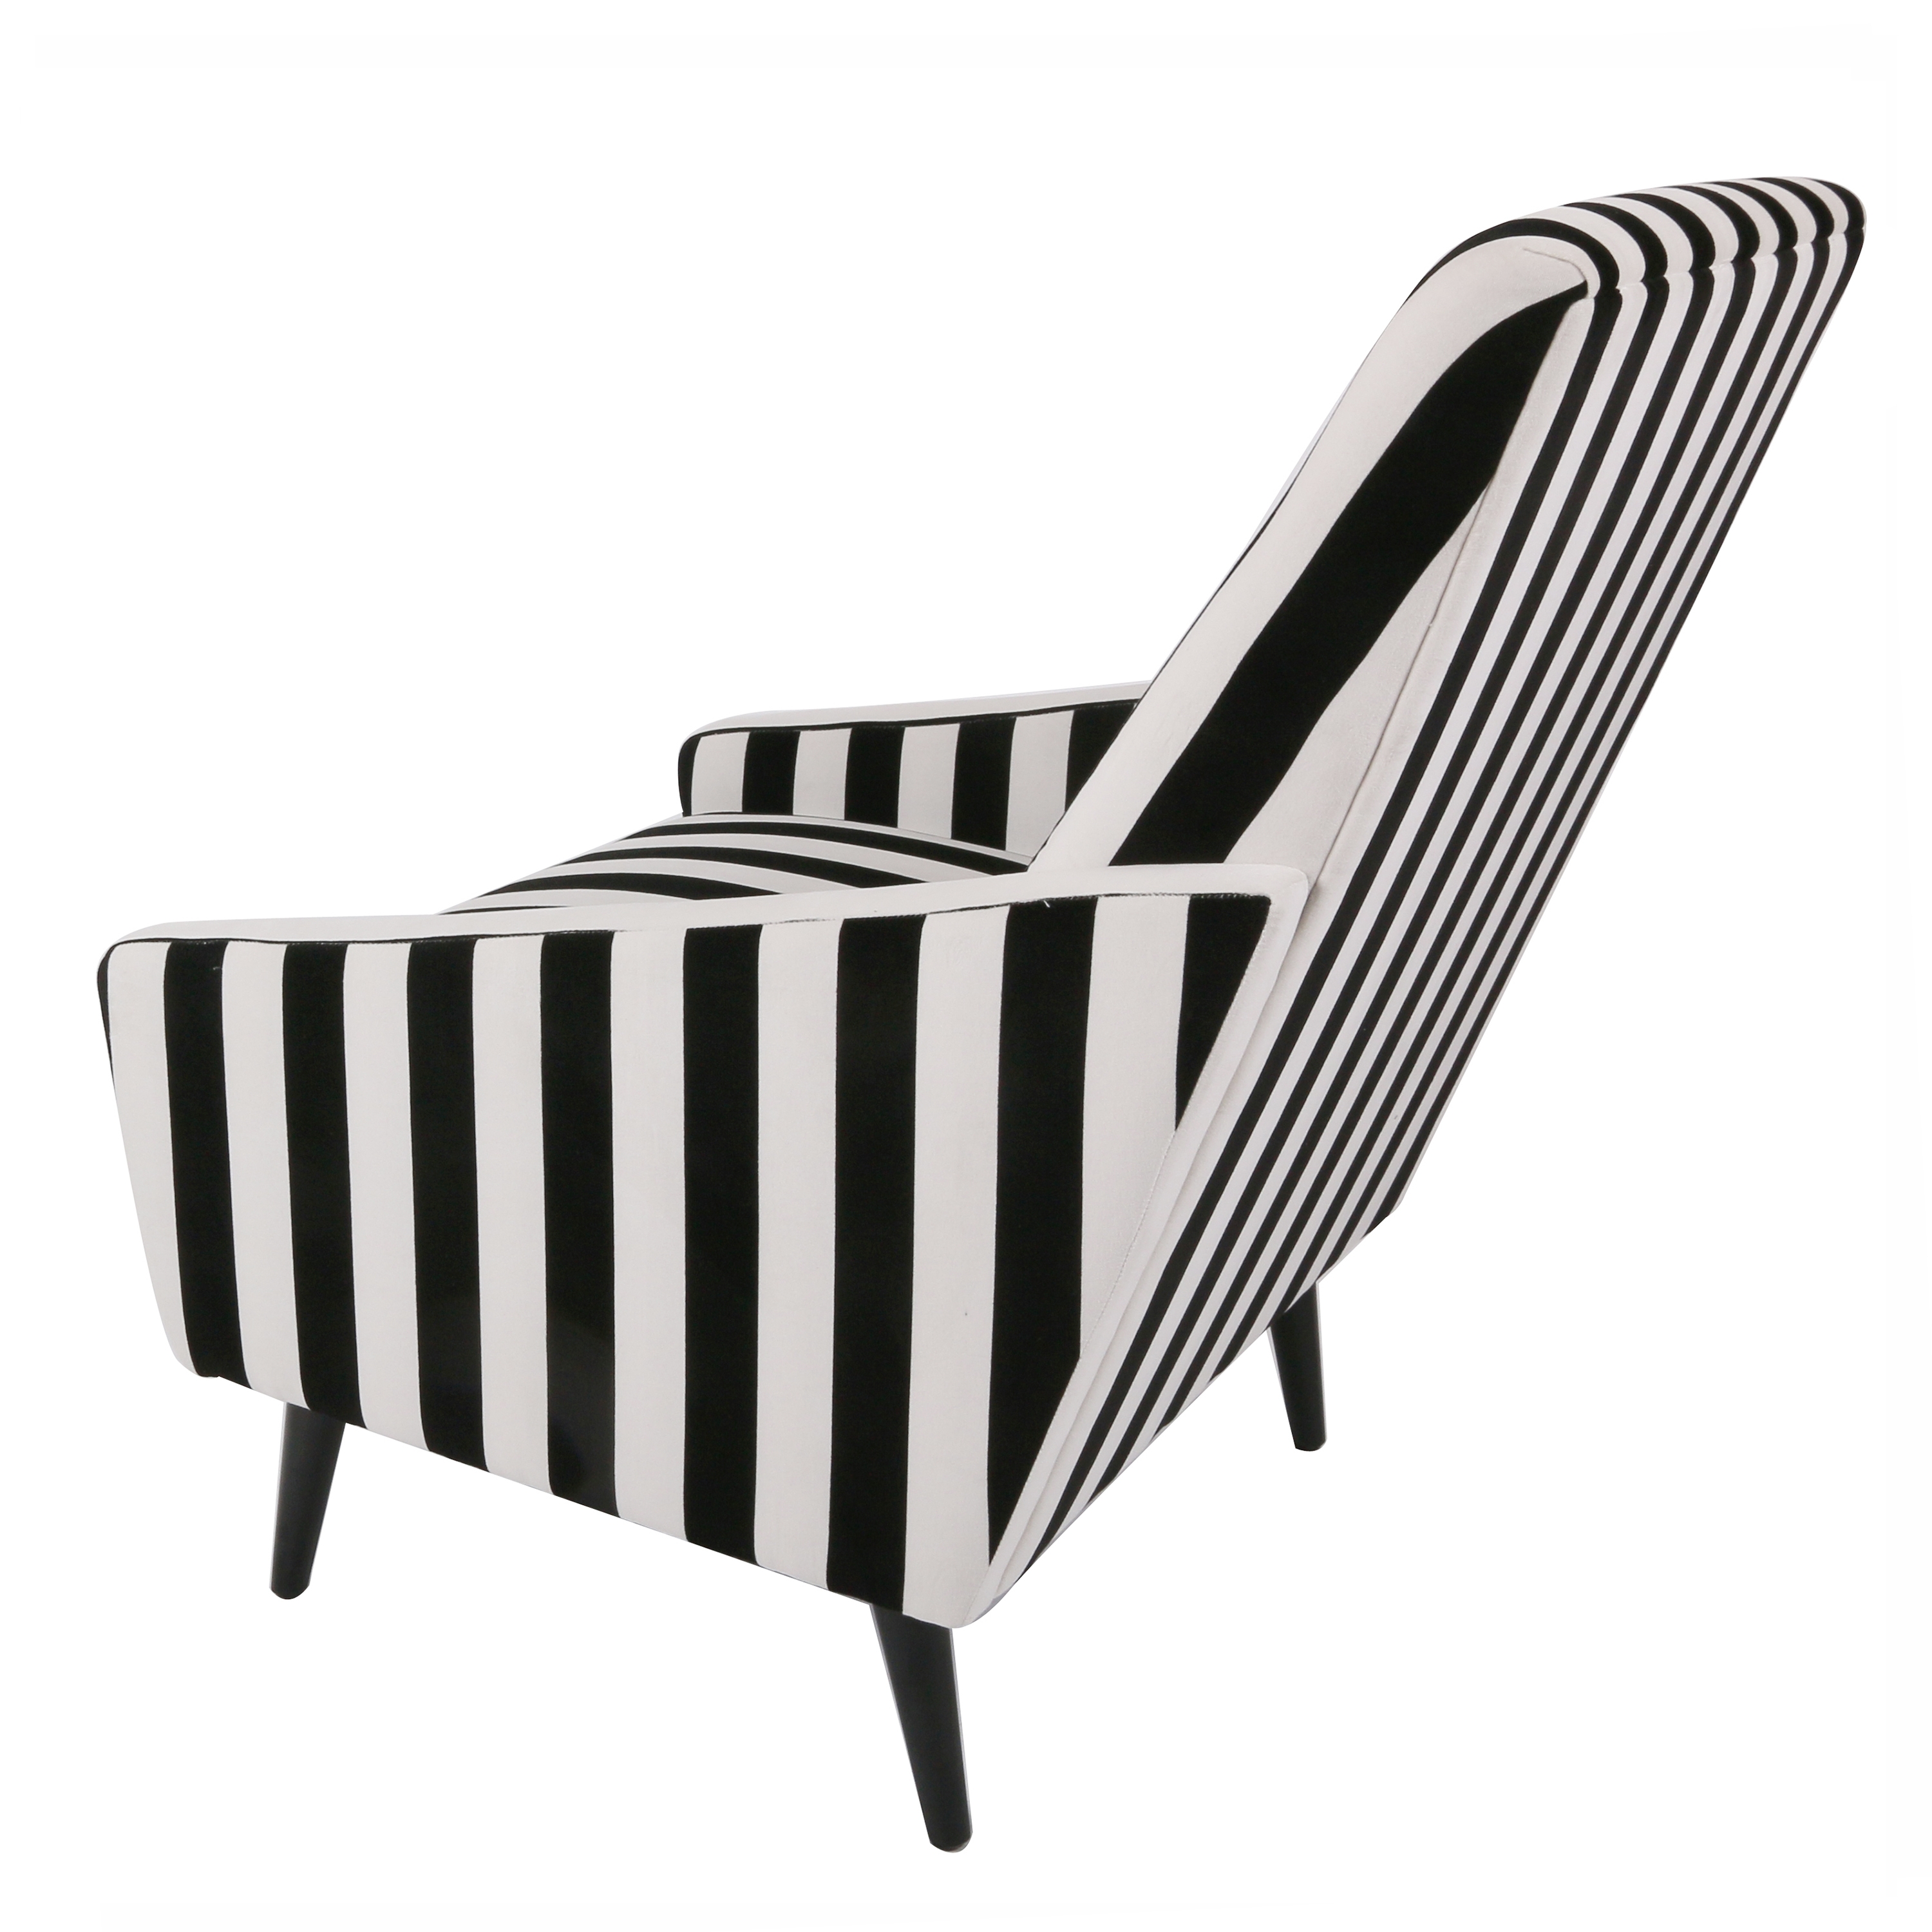 black white striped chair zeus gaming elegant and rtty1